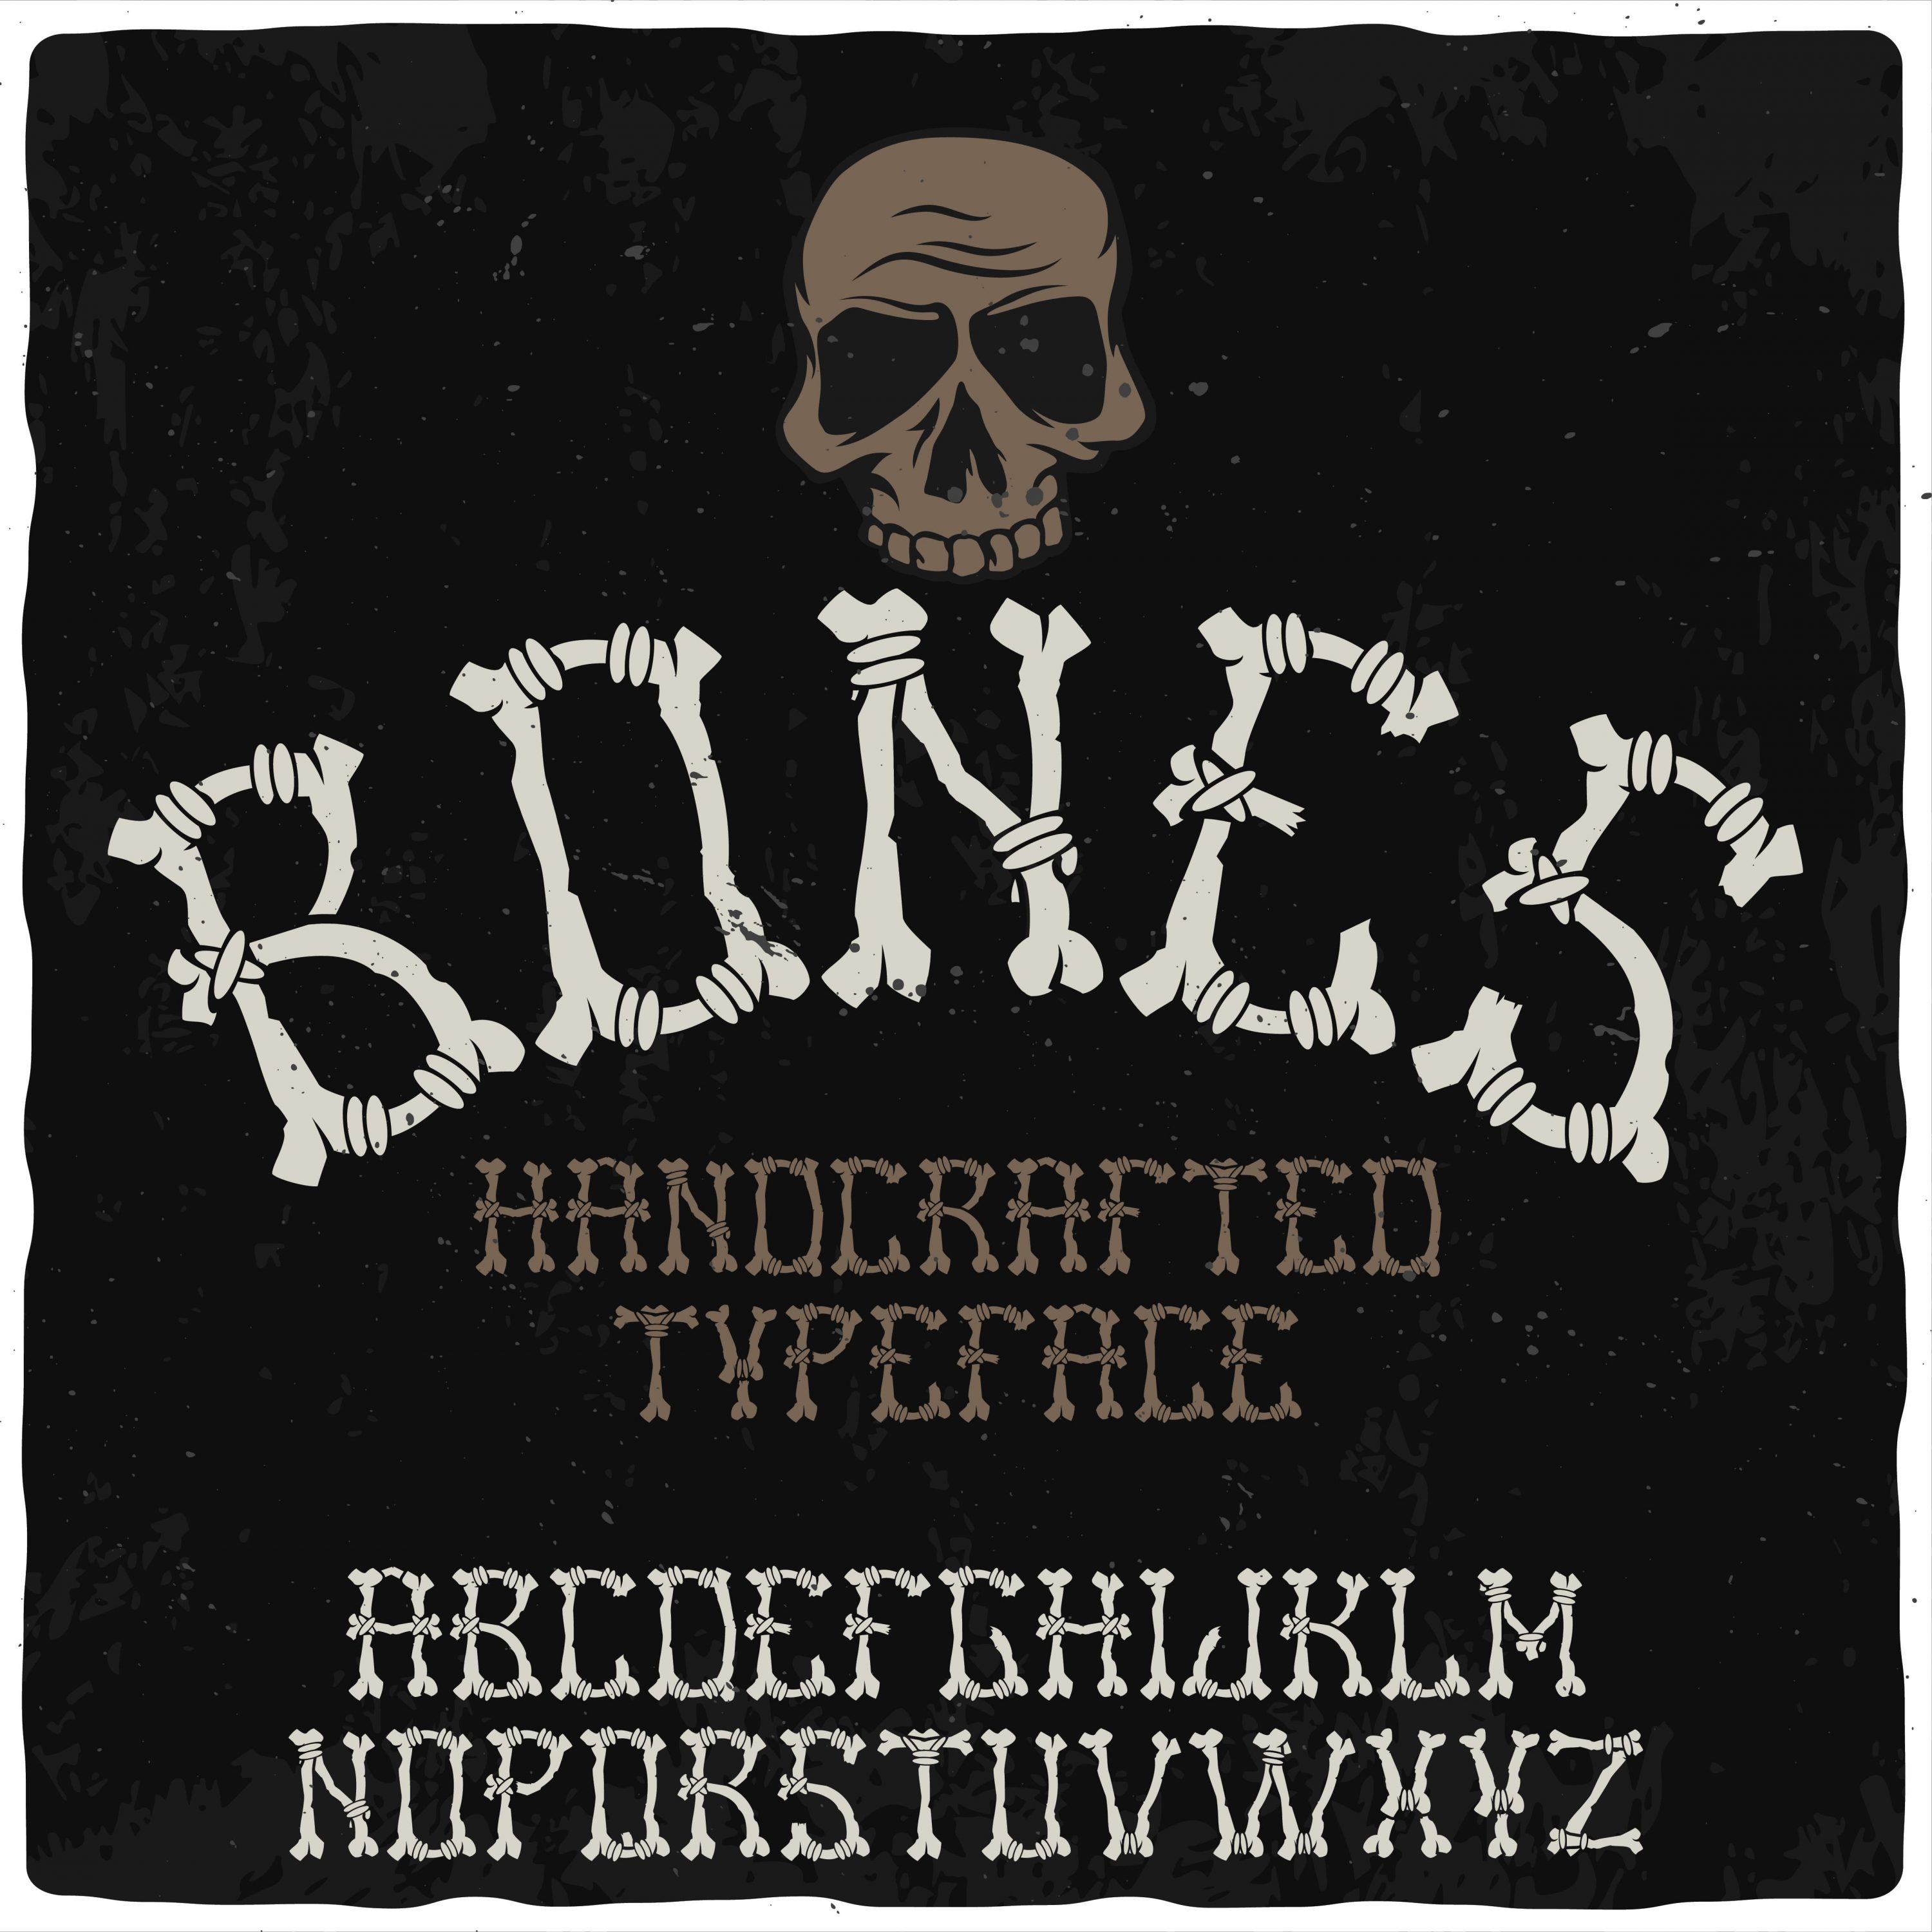 Bones and a skull form the basis of this font.